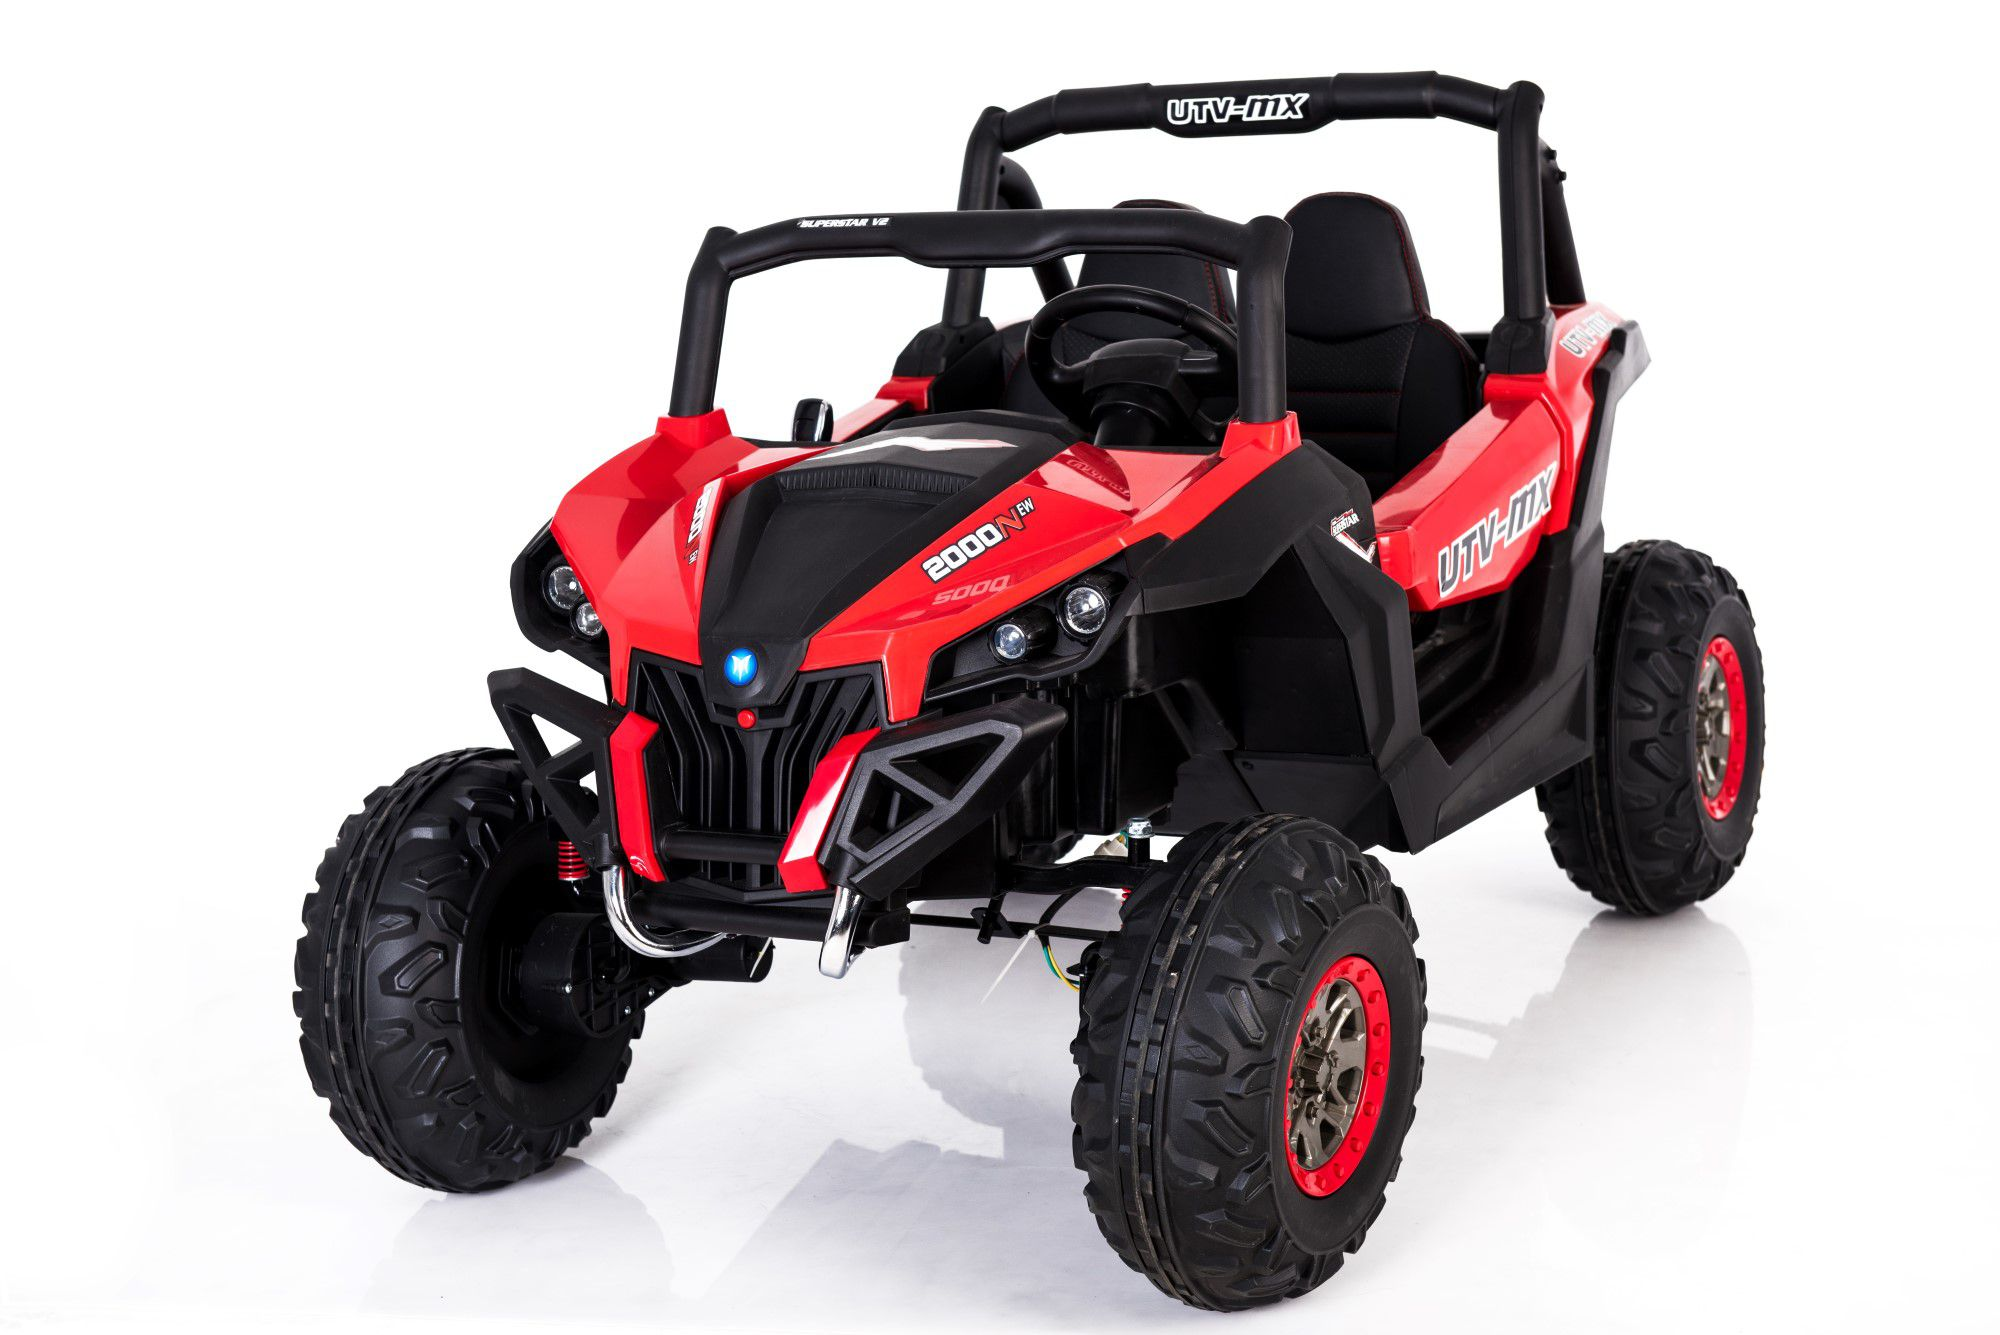 Toyhouse Polaris ATV Rideon Red Buy Toyhouse Polaris ATV Rideon